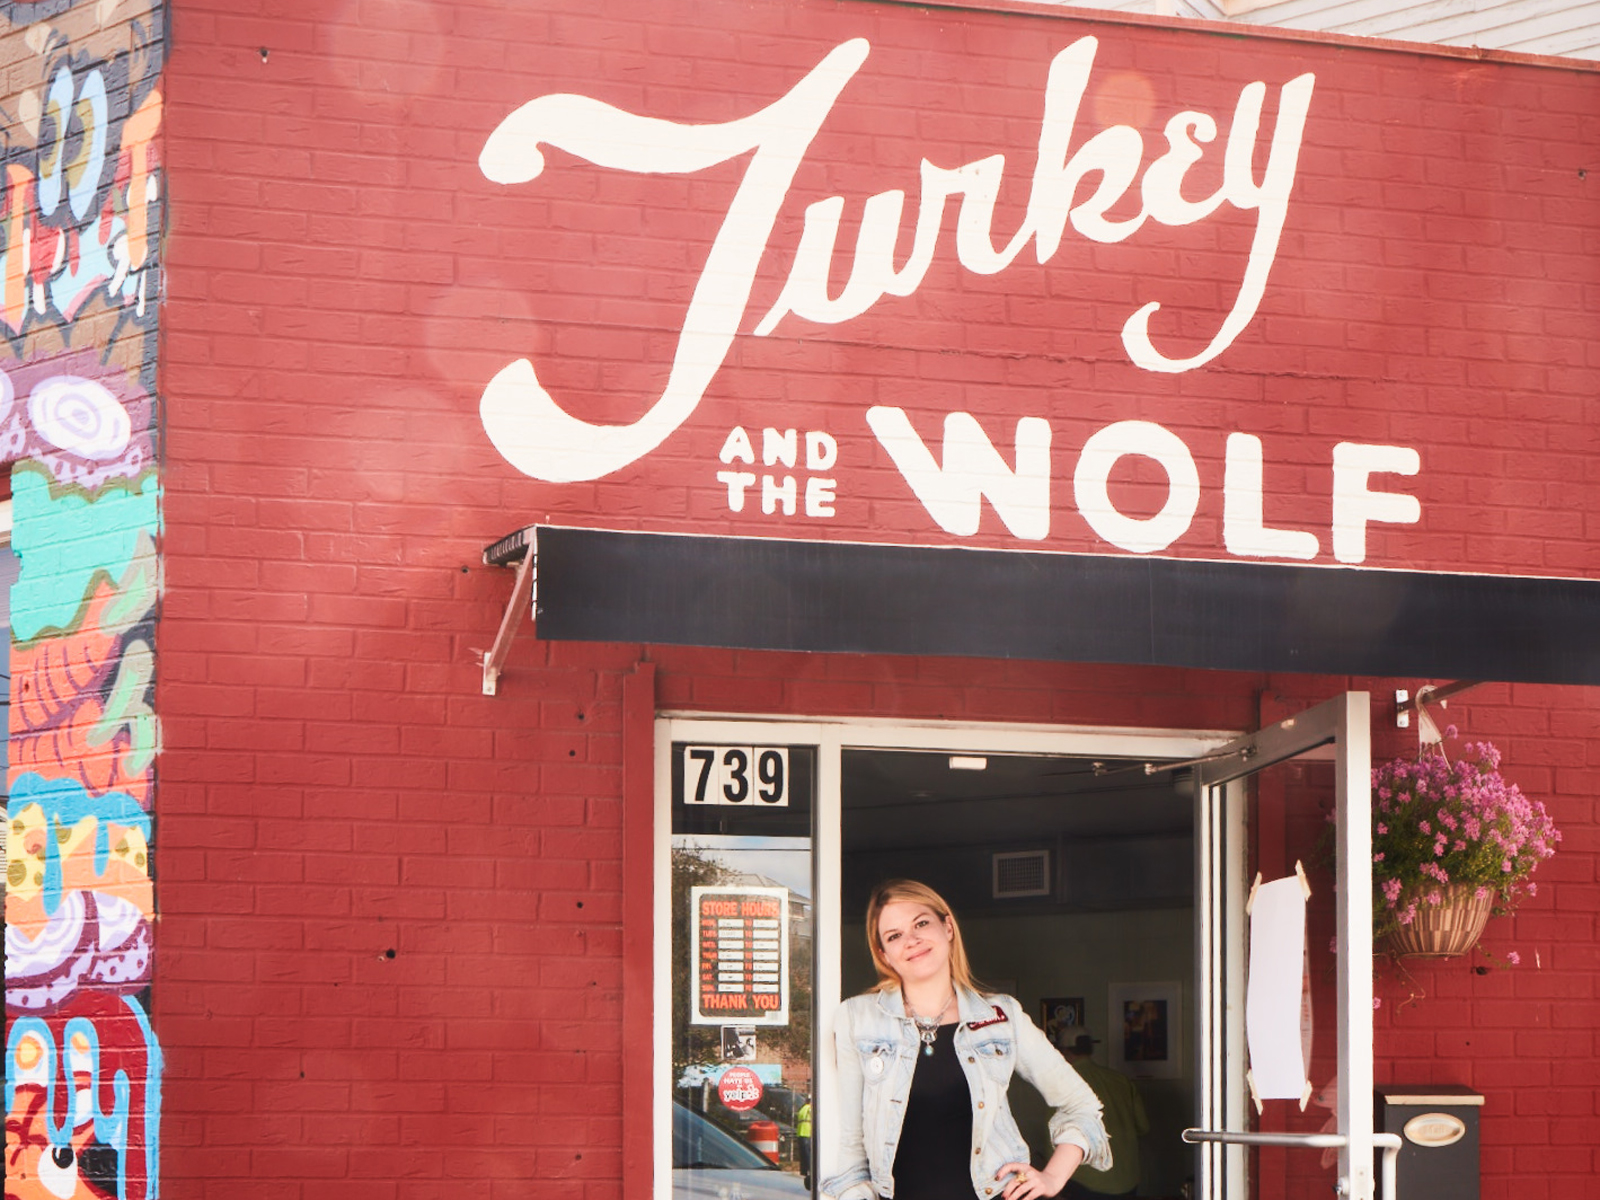 Turkey and the Wolf Exterior